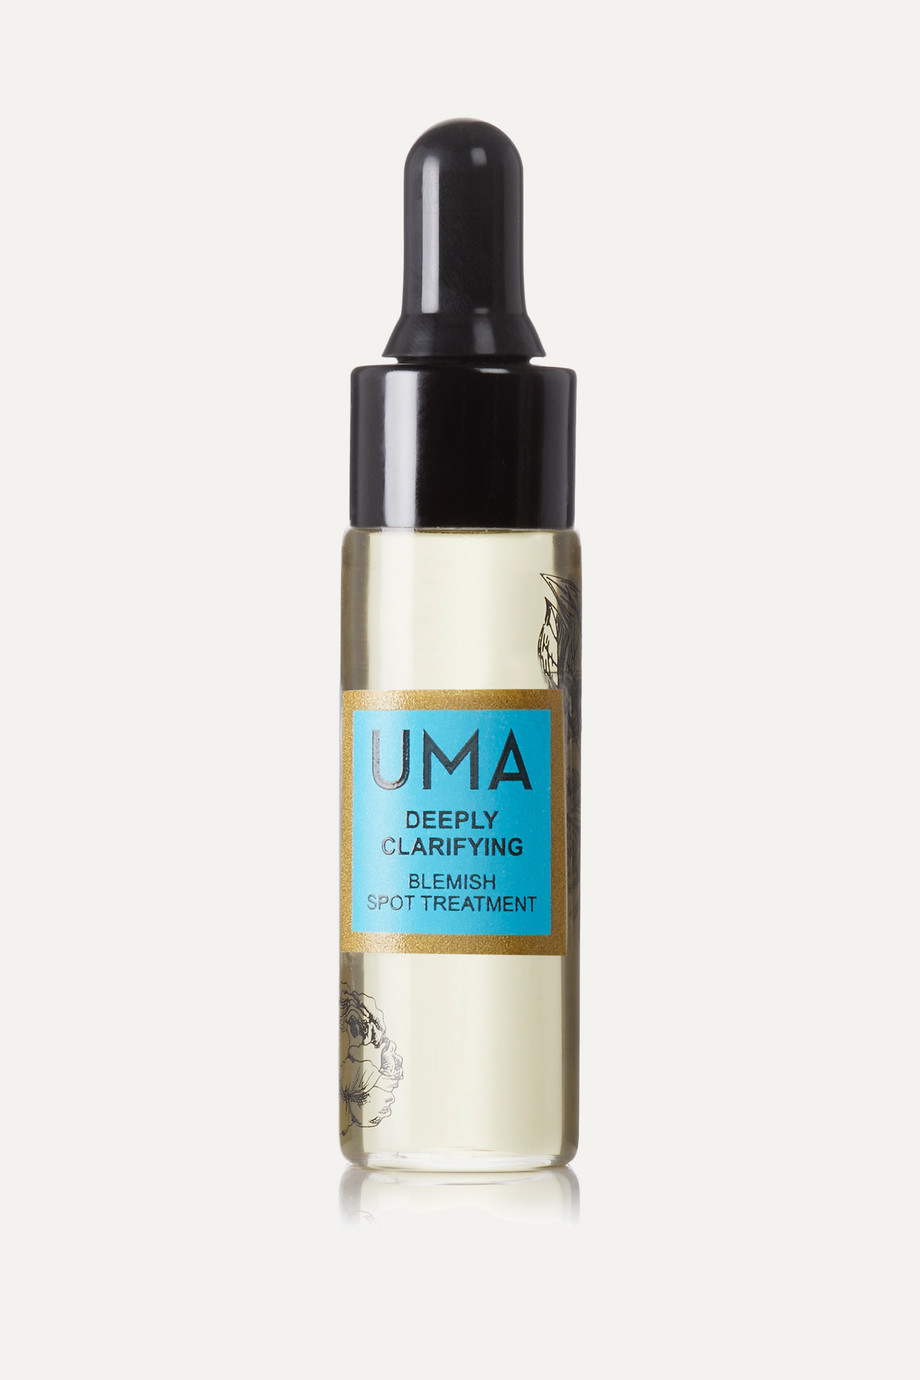 UMA Oils + NET SUSTAIN Deeply Clarifying Blemish Spot Treatment, 15ml